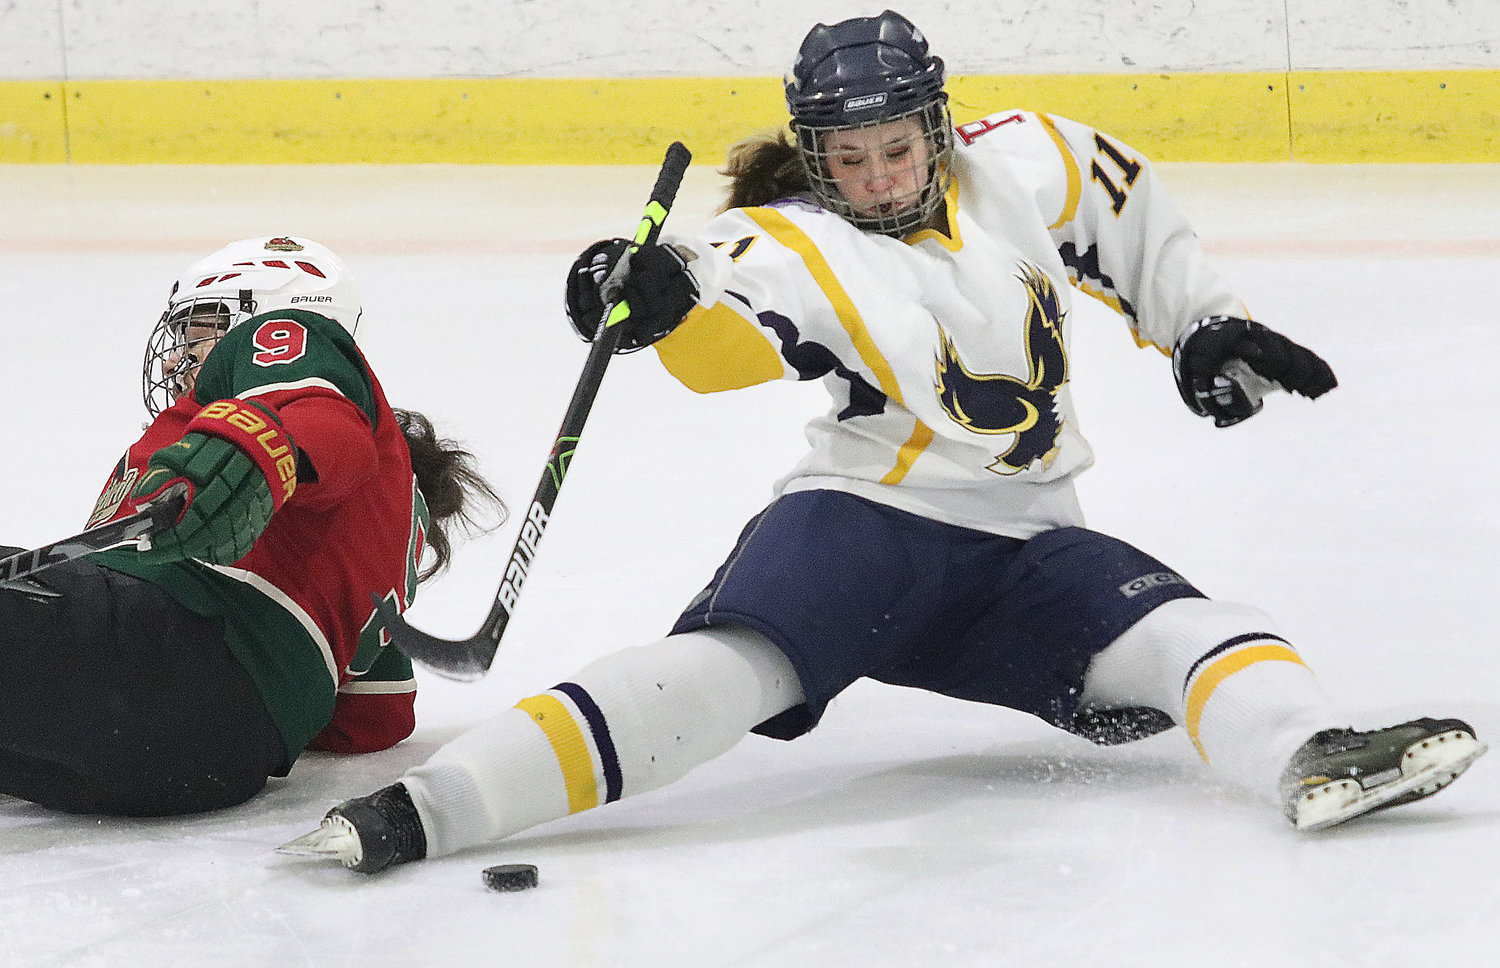 Sophomore Anna Gardiner attempts to play the puck as she falls to the ice after a collision.